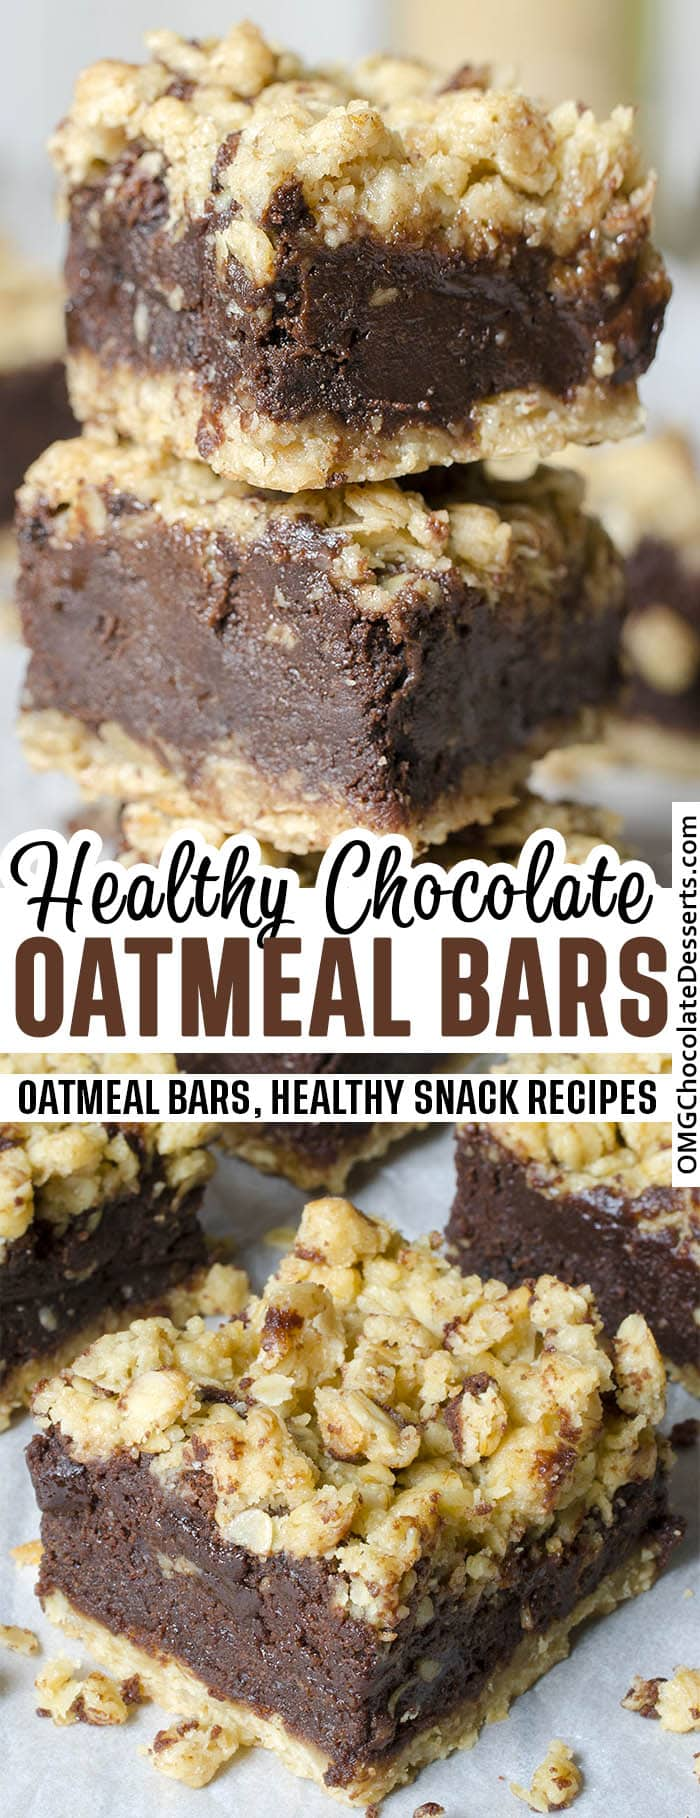 Chocolate Oatmeal Bars - two images with title text beside.